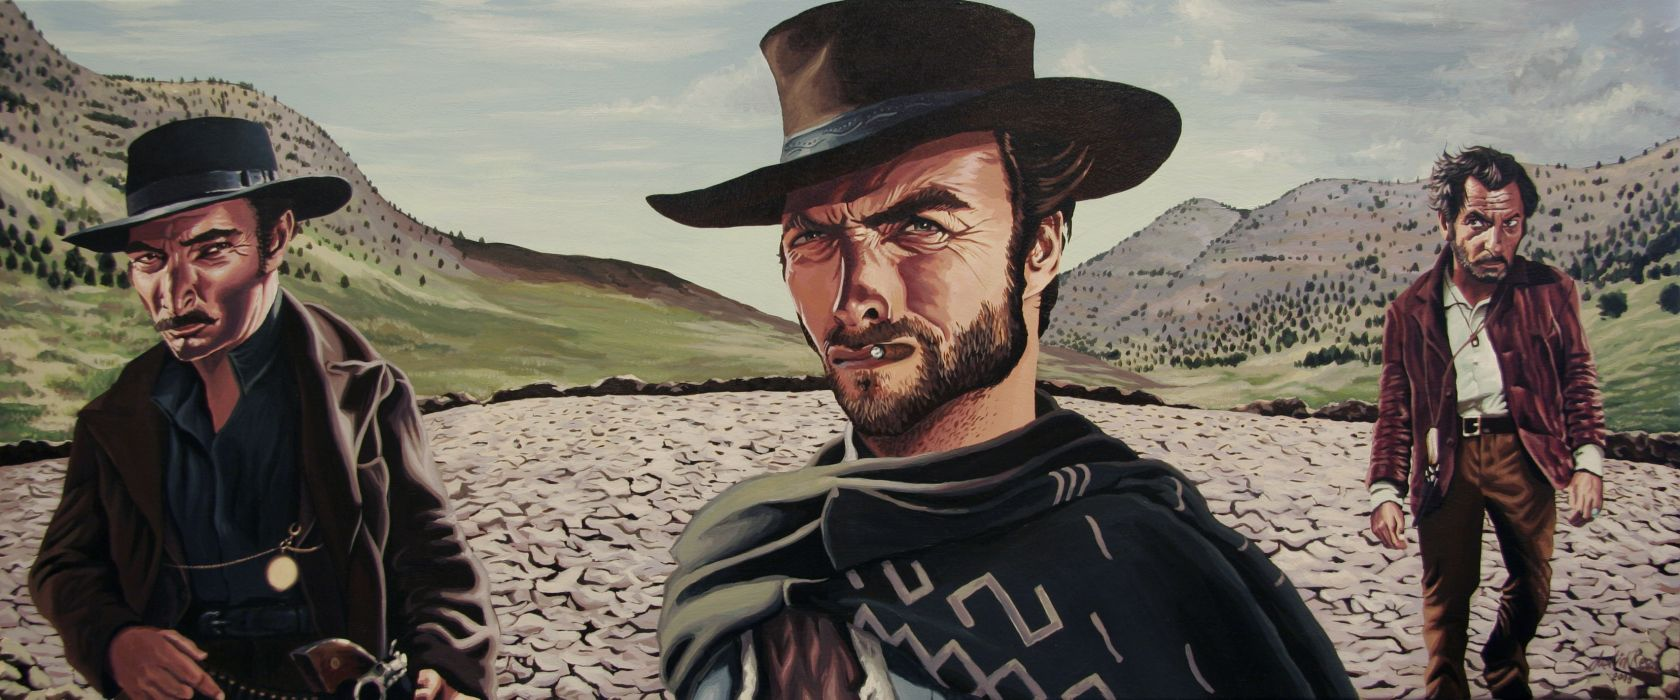 The Good The Bad And The Ugly Western Clint Eastwood G Wallpaper